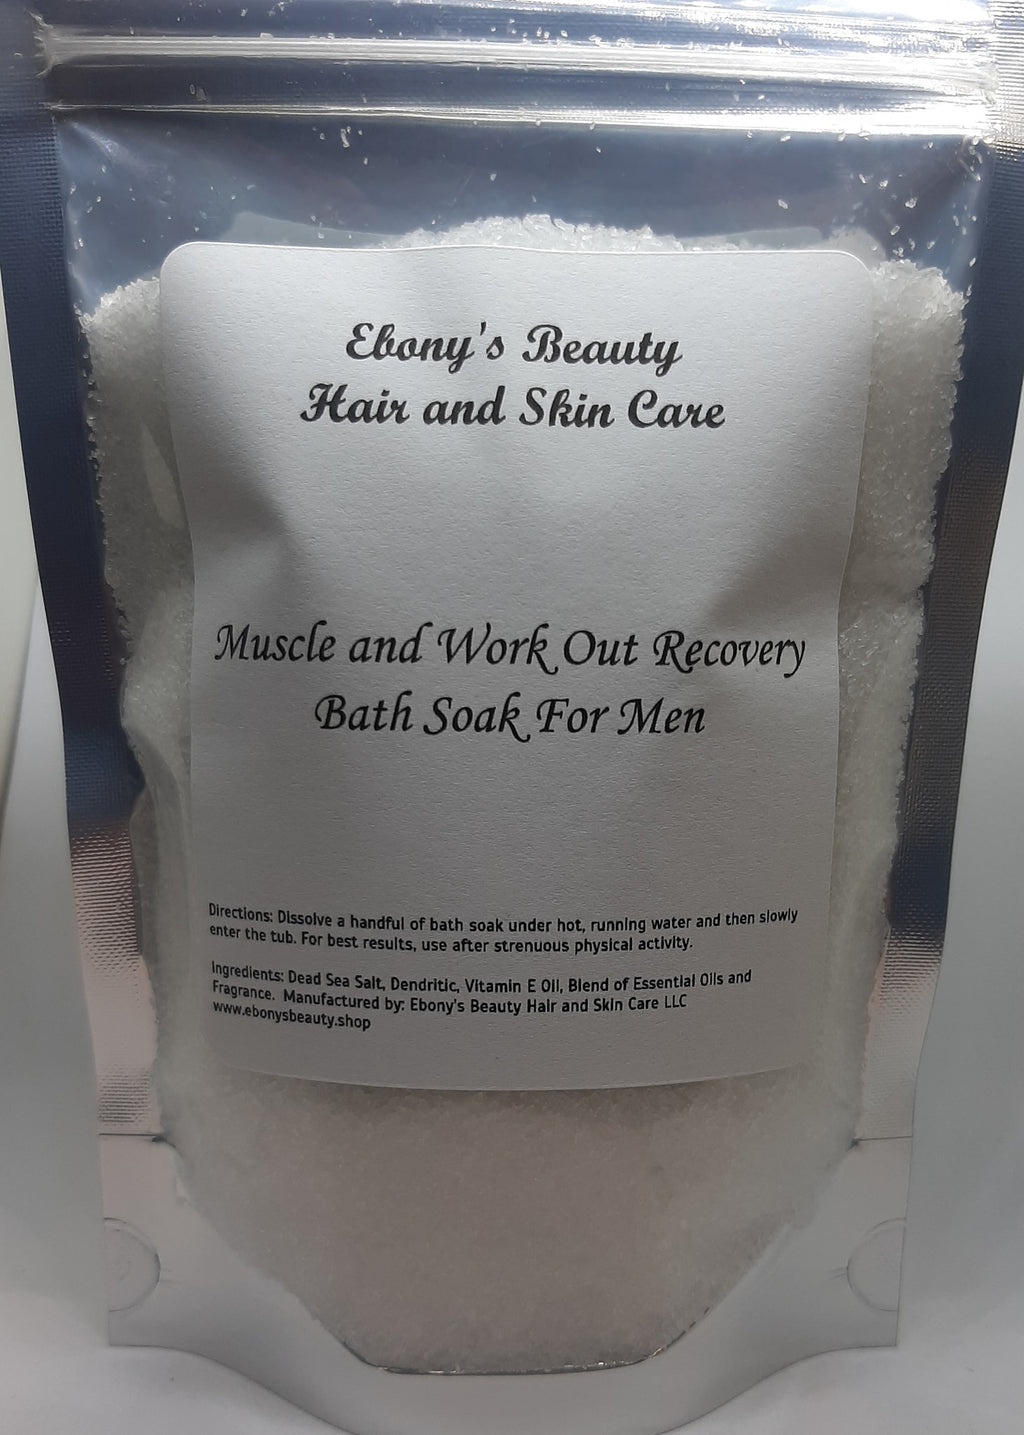 Muscle and Work Out Recovery Bath Soak For Men - Ebony's Beauty Hair and Skin Care LLC